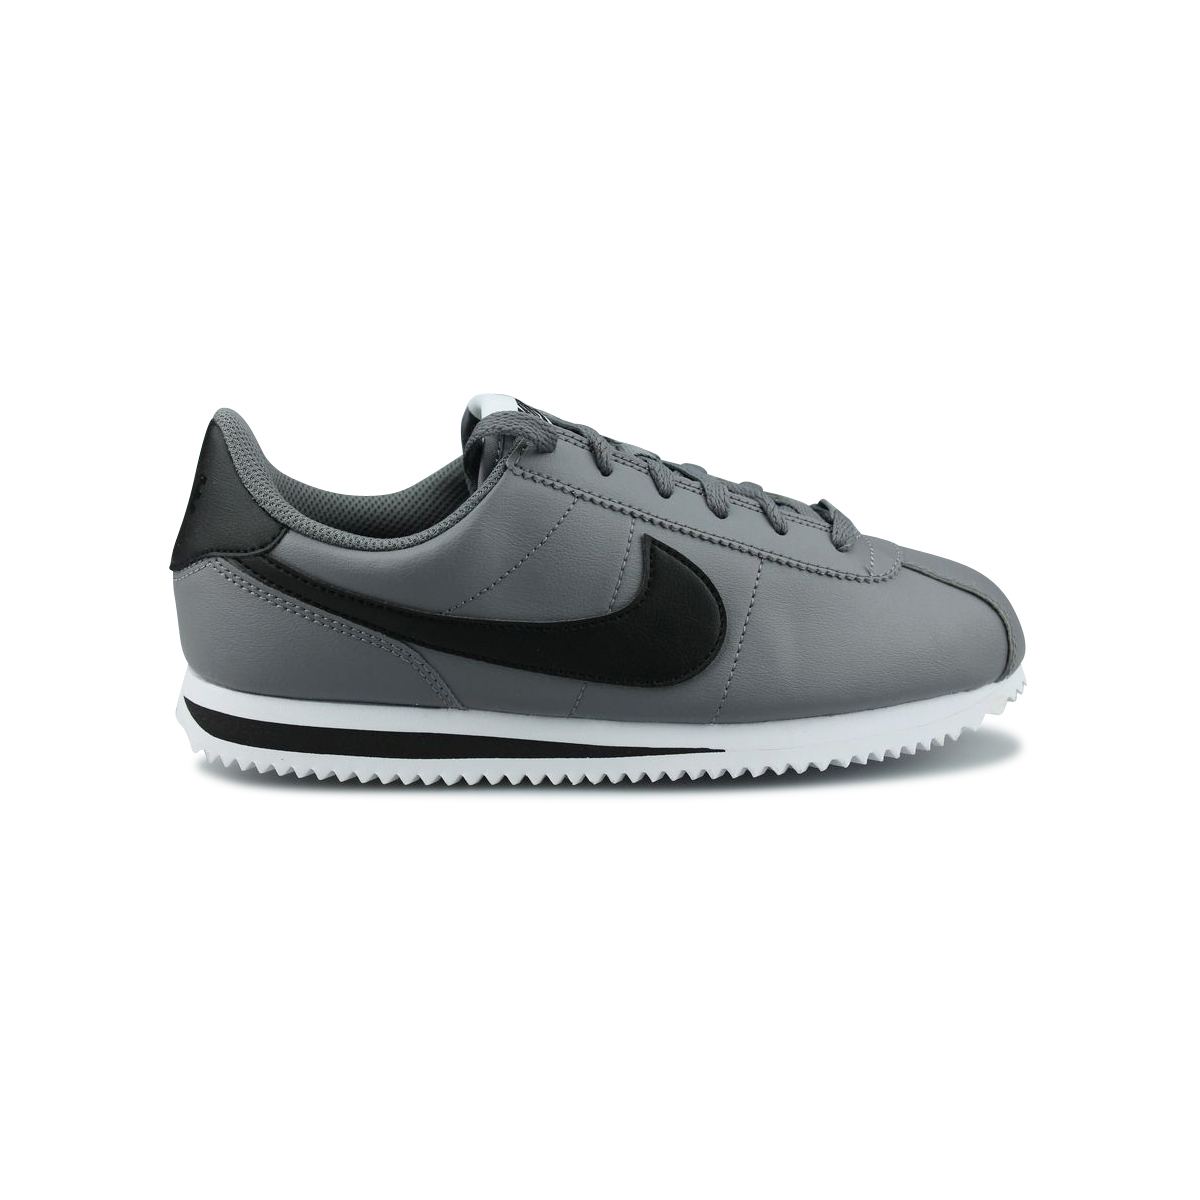 reputable site d6a44 933f2 ... new style nike cortez basic sl junior gris 904764 002. loading zoom  8fb13 9ff63